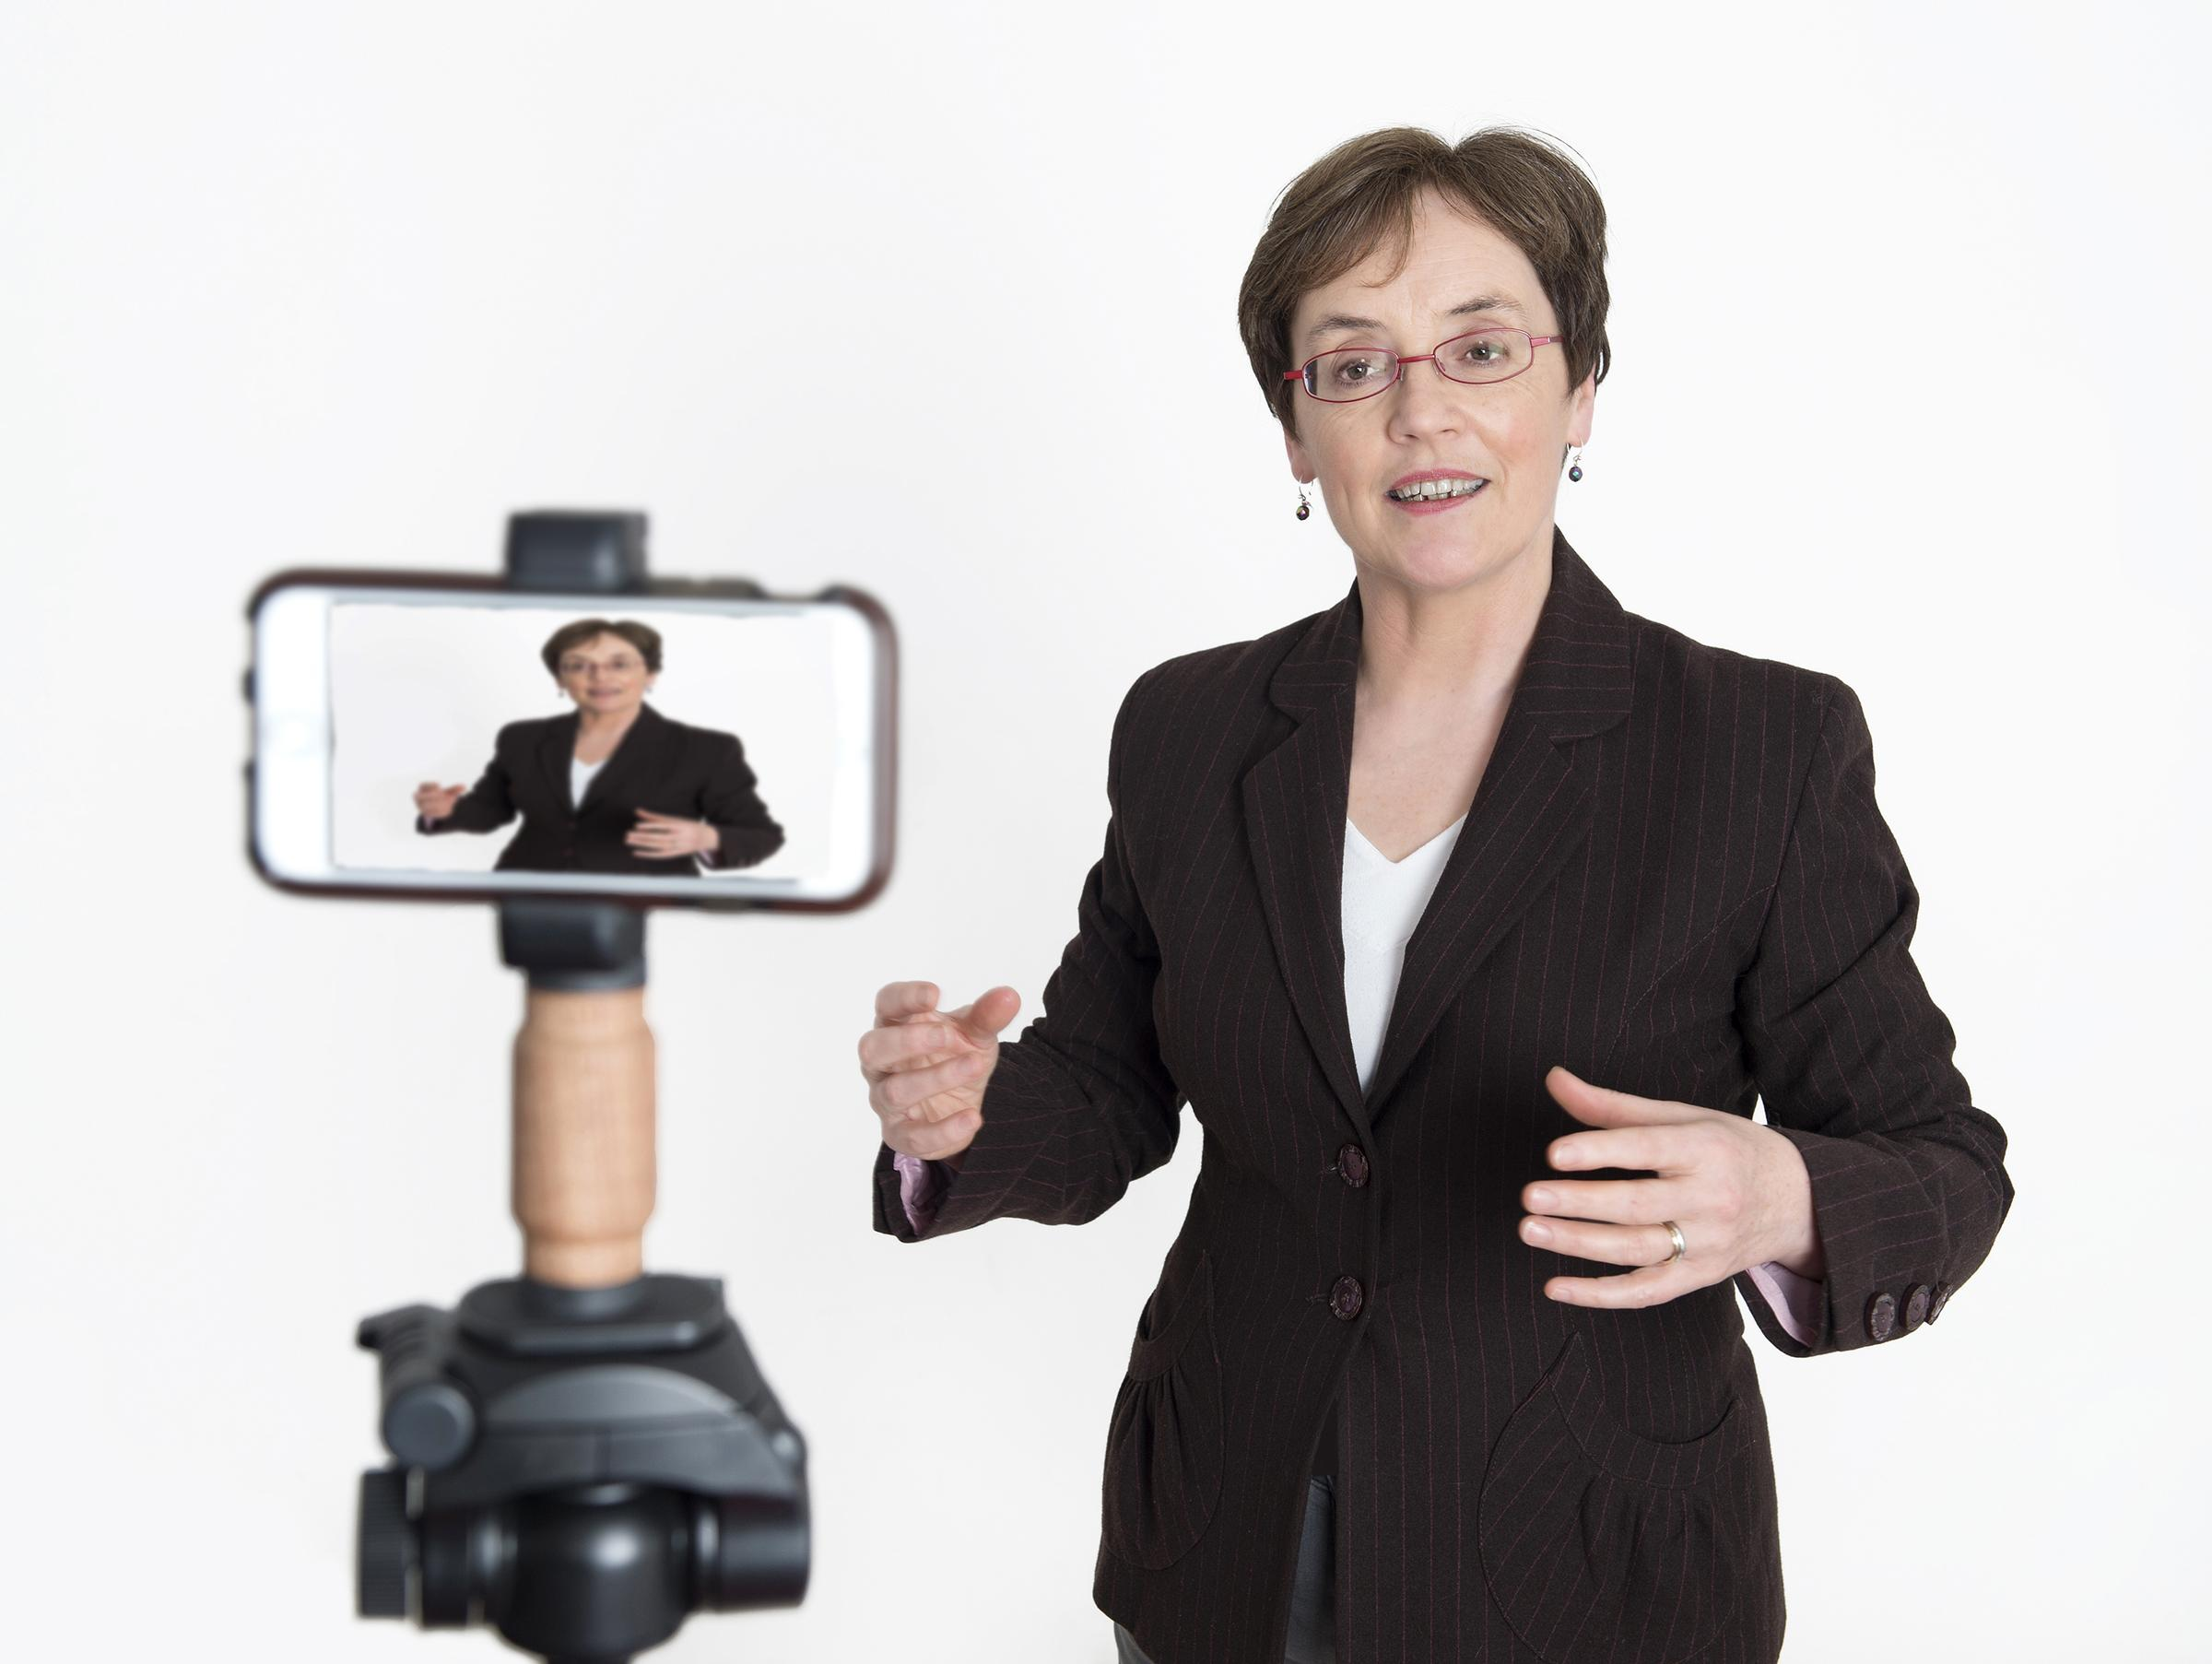 MOBILE VIDEO MADE EASY One Day Workshop with Aileen O'Meara